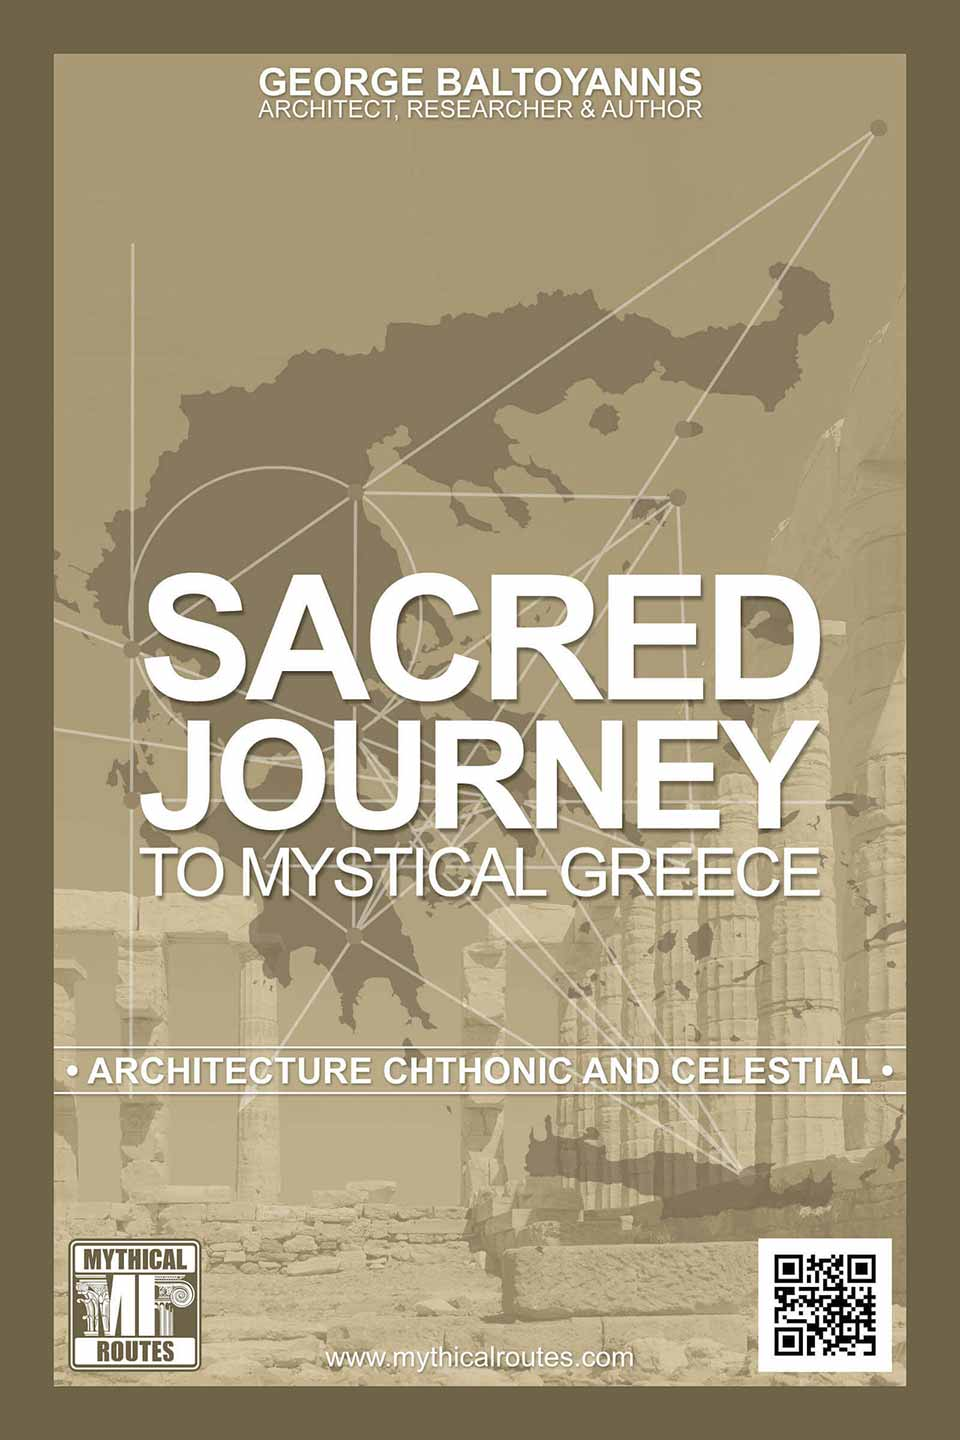 Sacred Journey to Mystical Greece - Goerge Baltoyannis